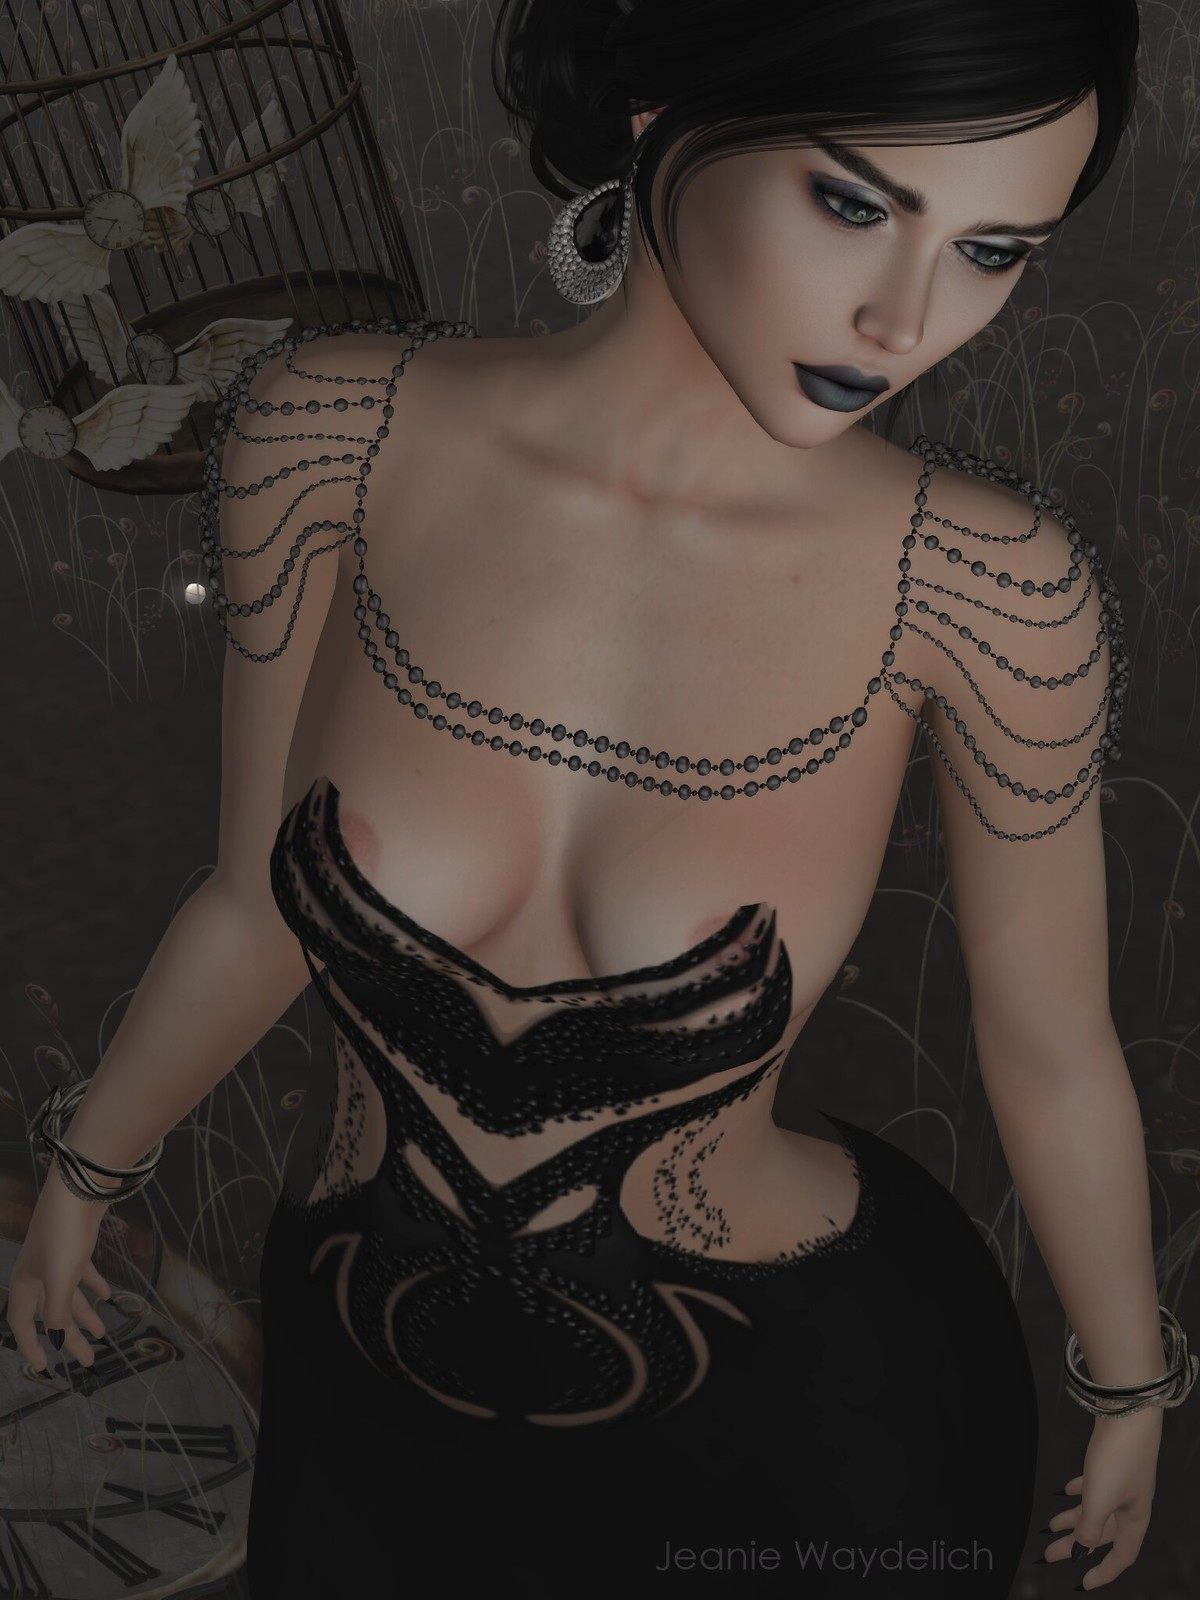 LOTD 946 - Time goes by so slowly